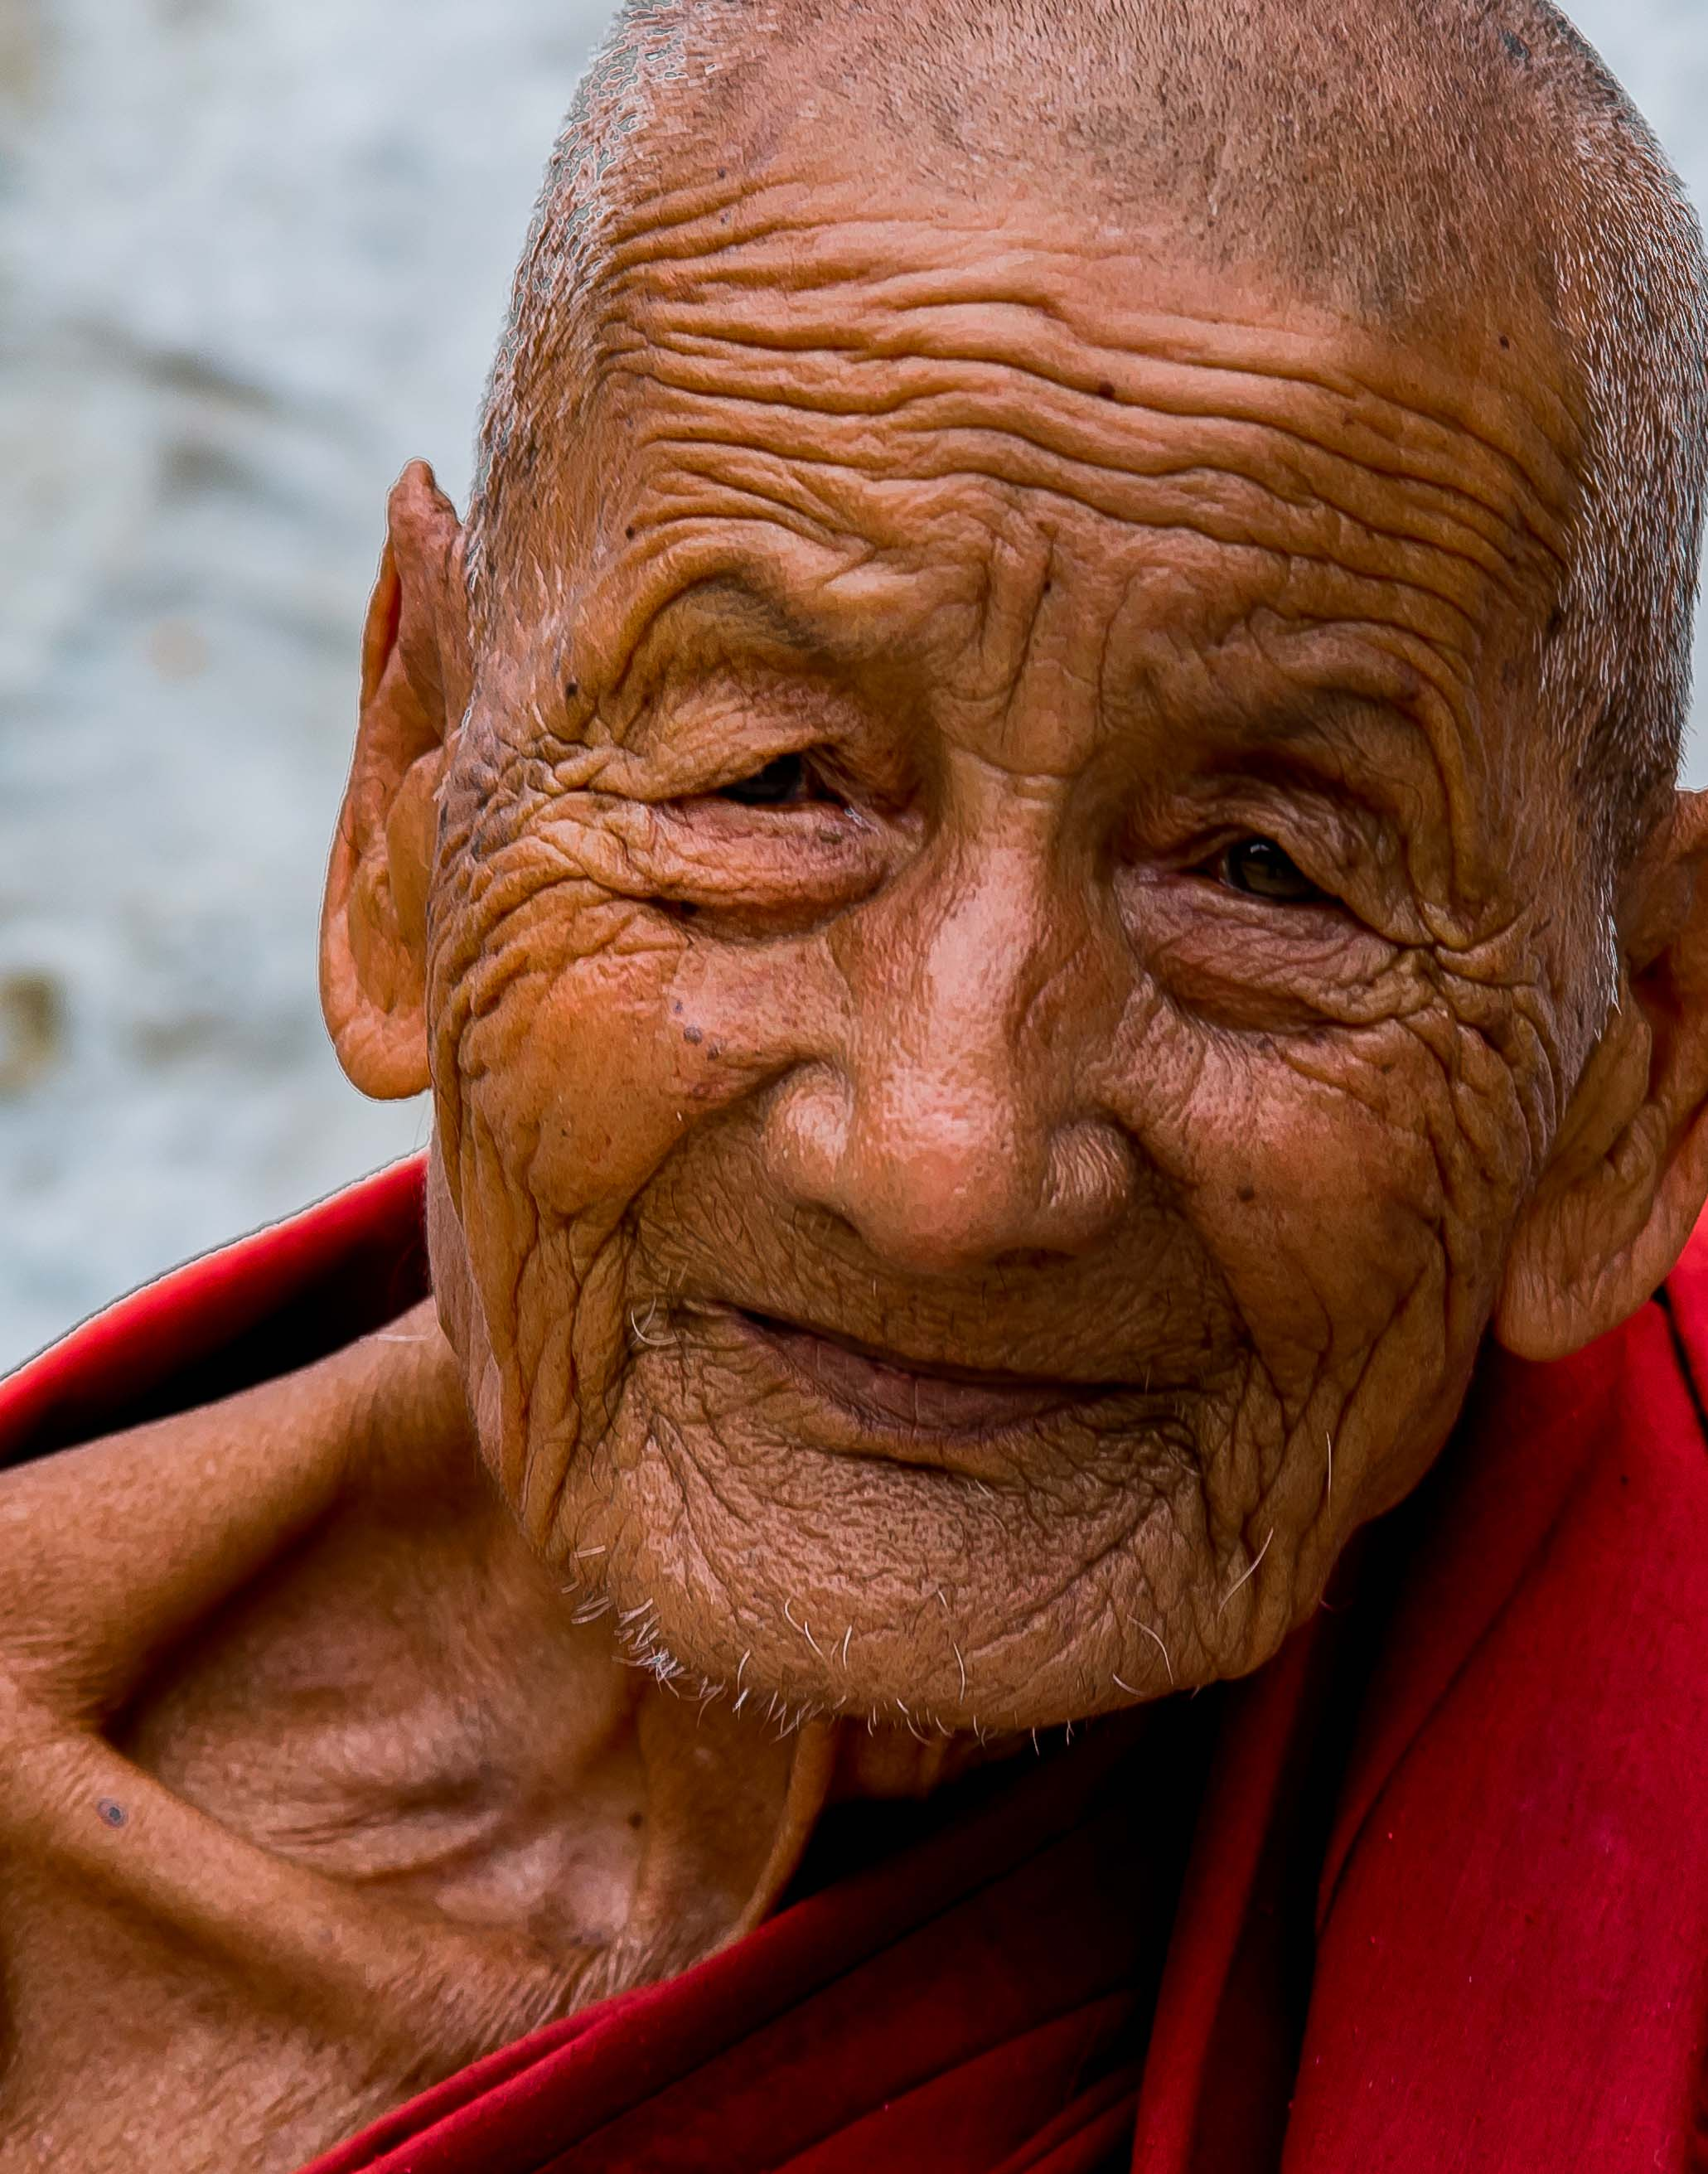 Eyes of Wisdom, Inle Lake, Myanmar 2015